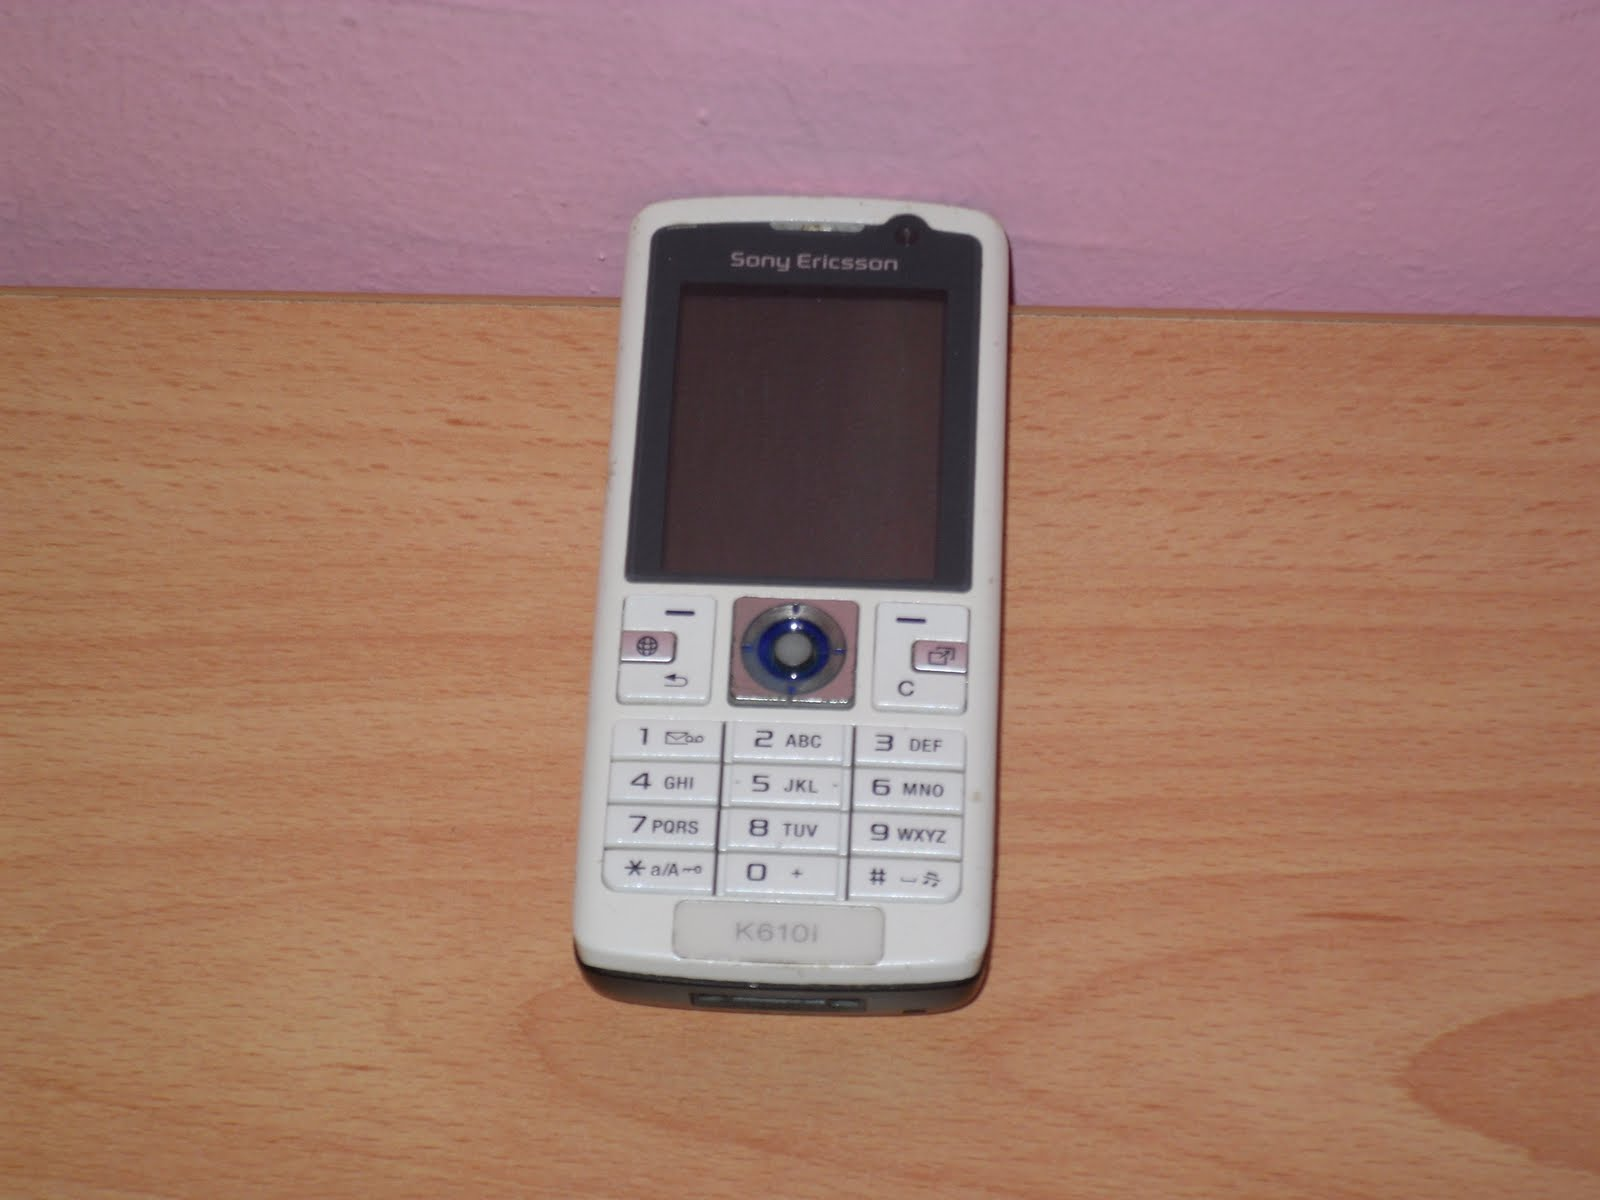 A target=blank href=http://gsmspexblogspotcom/2014/11/sony-ericsson-k618htmlview website of this image/a br /b